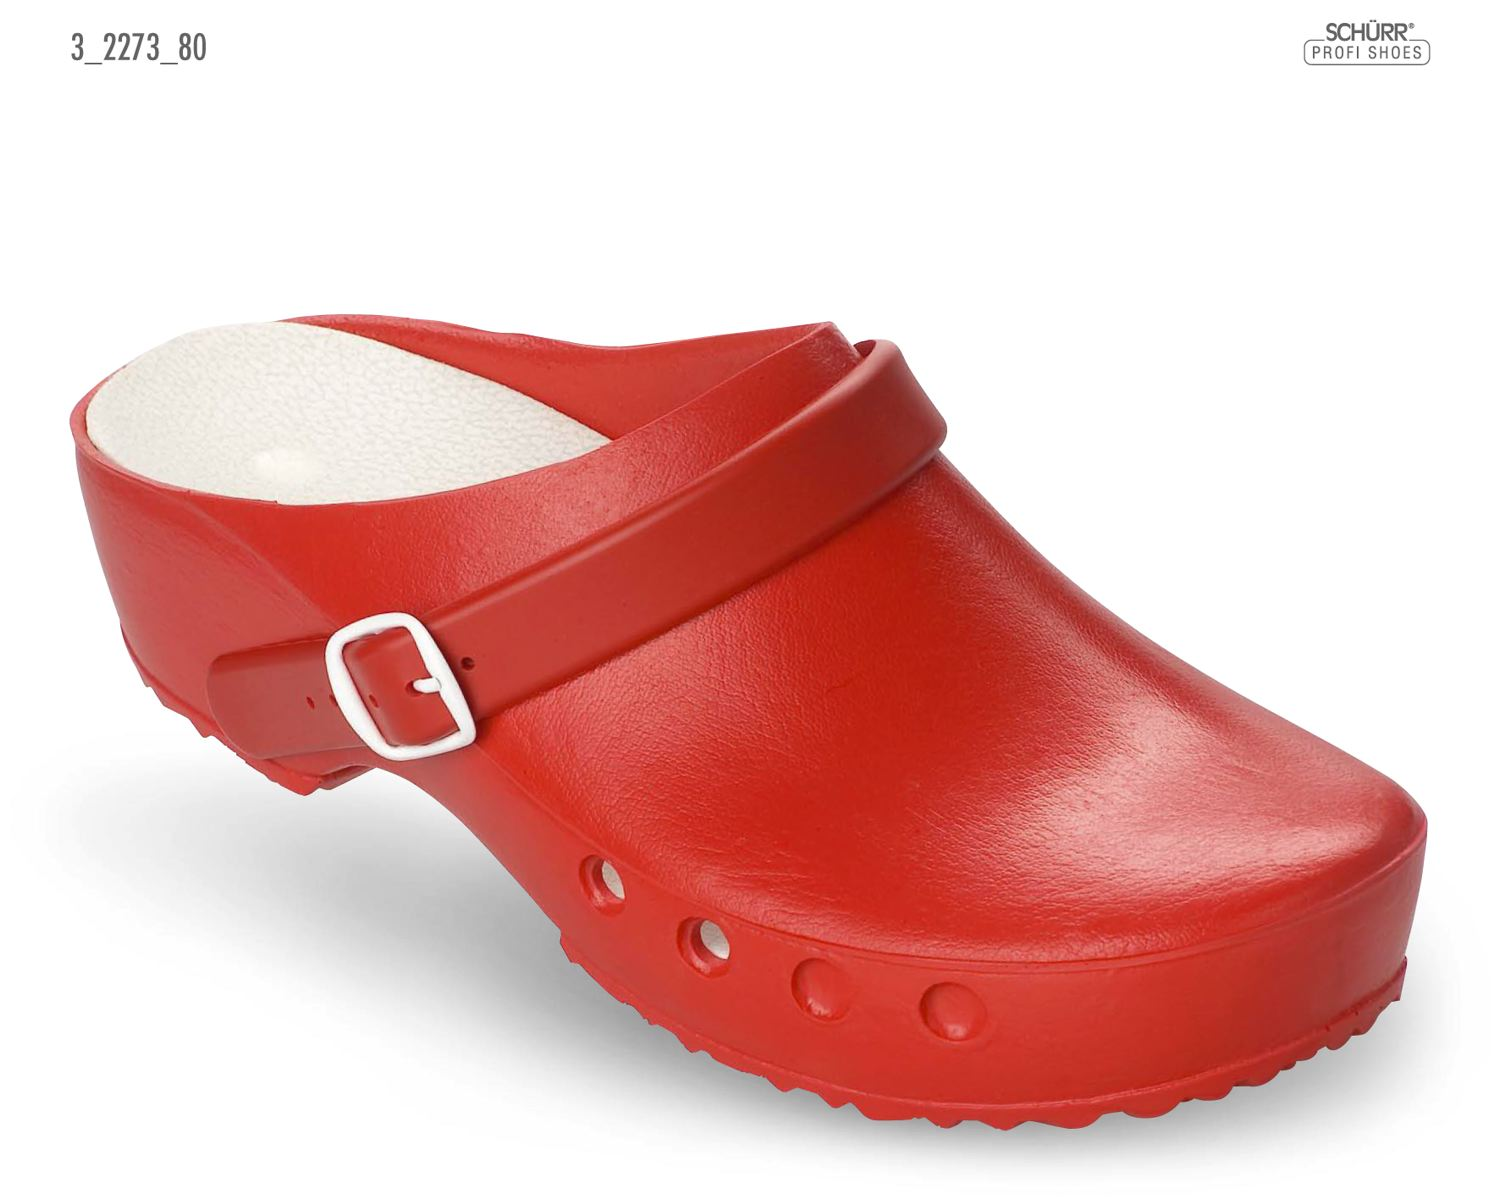 Schurr Washable Clog Classic Red 2273